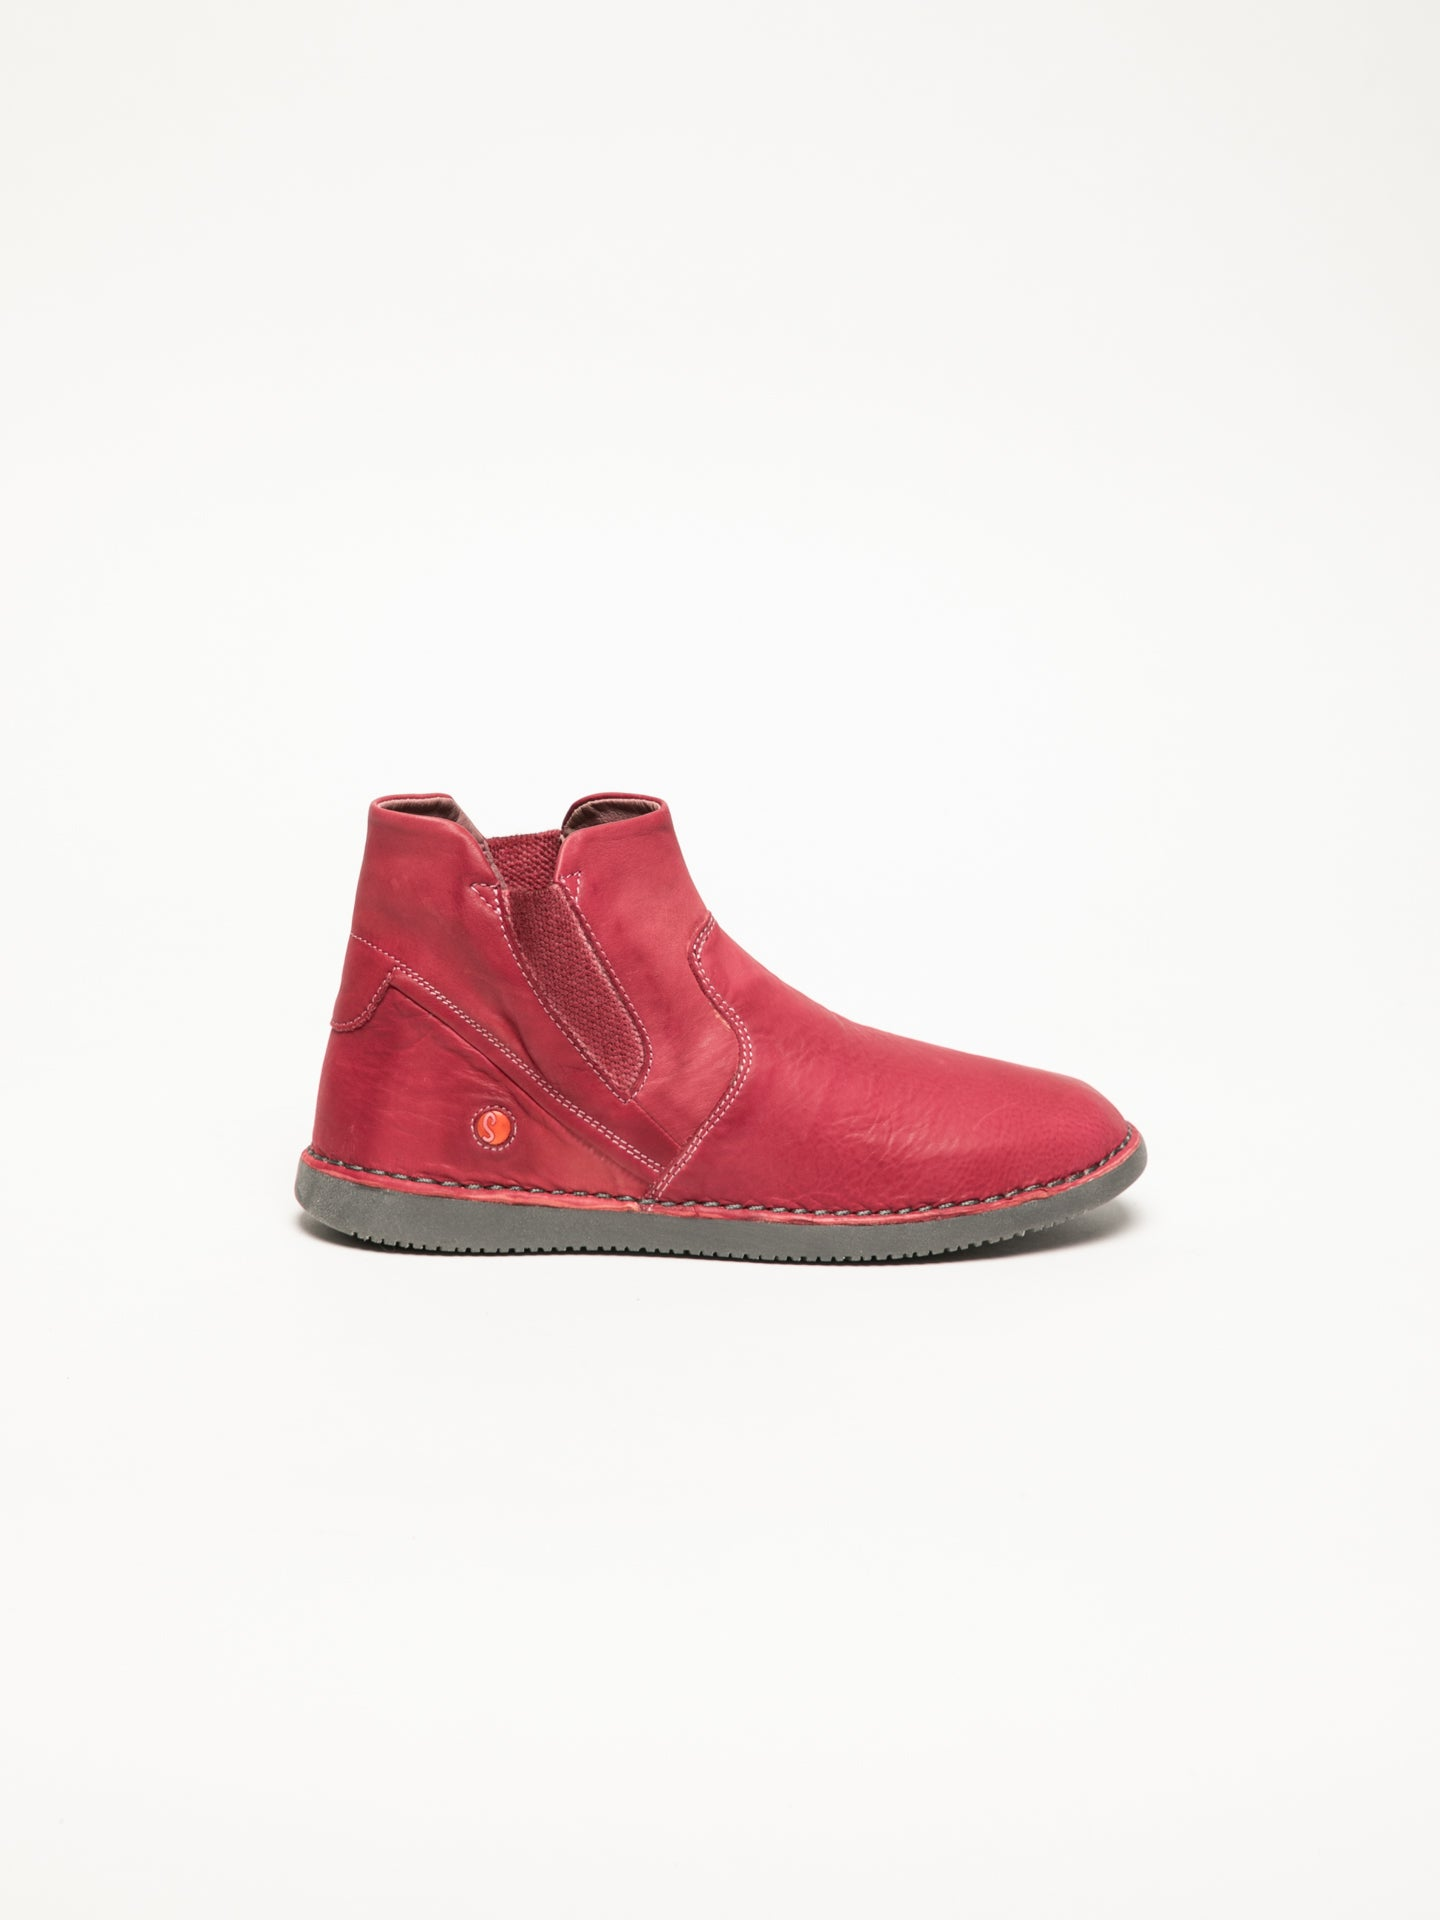 Softinos Red Round Toe Ankle Boots